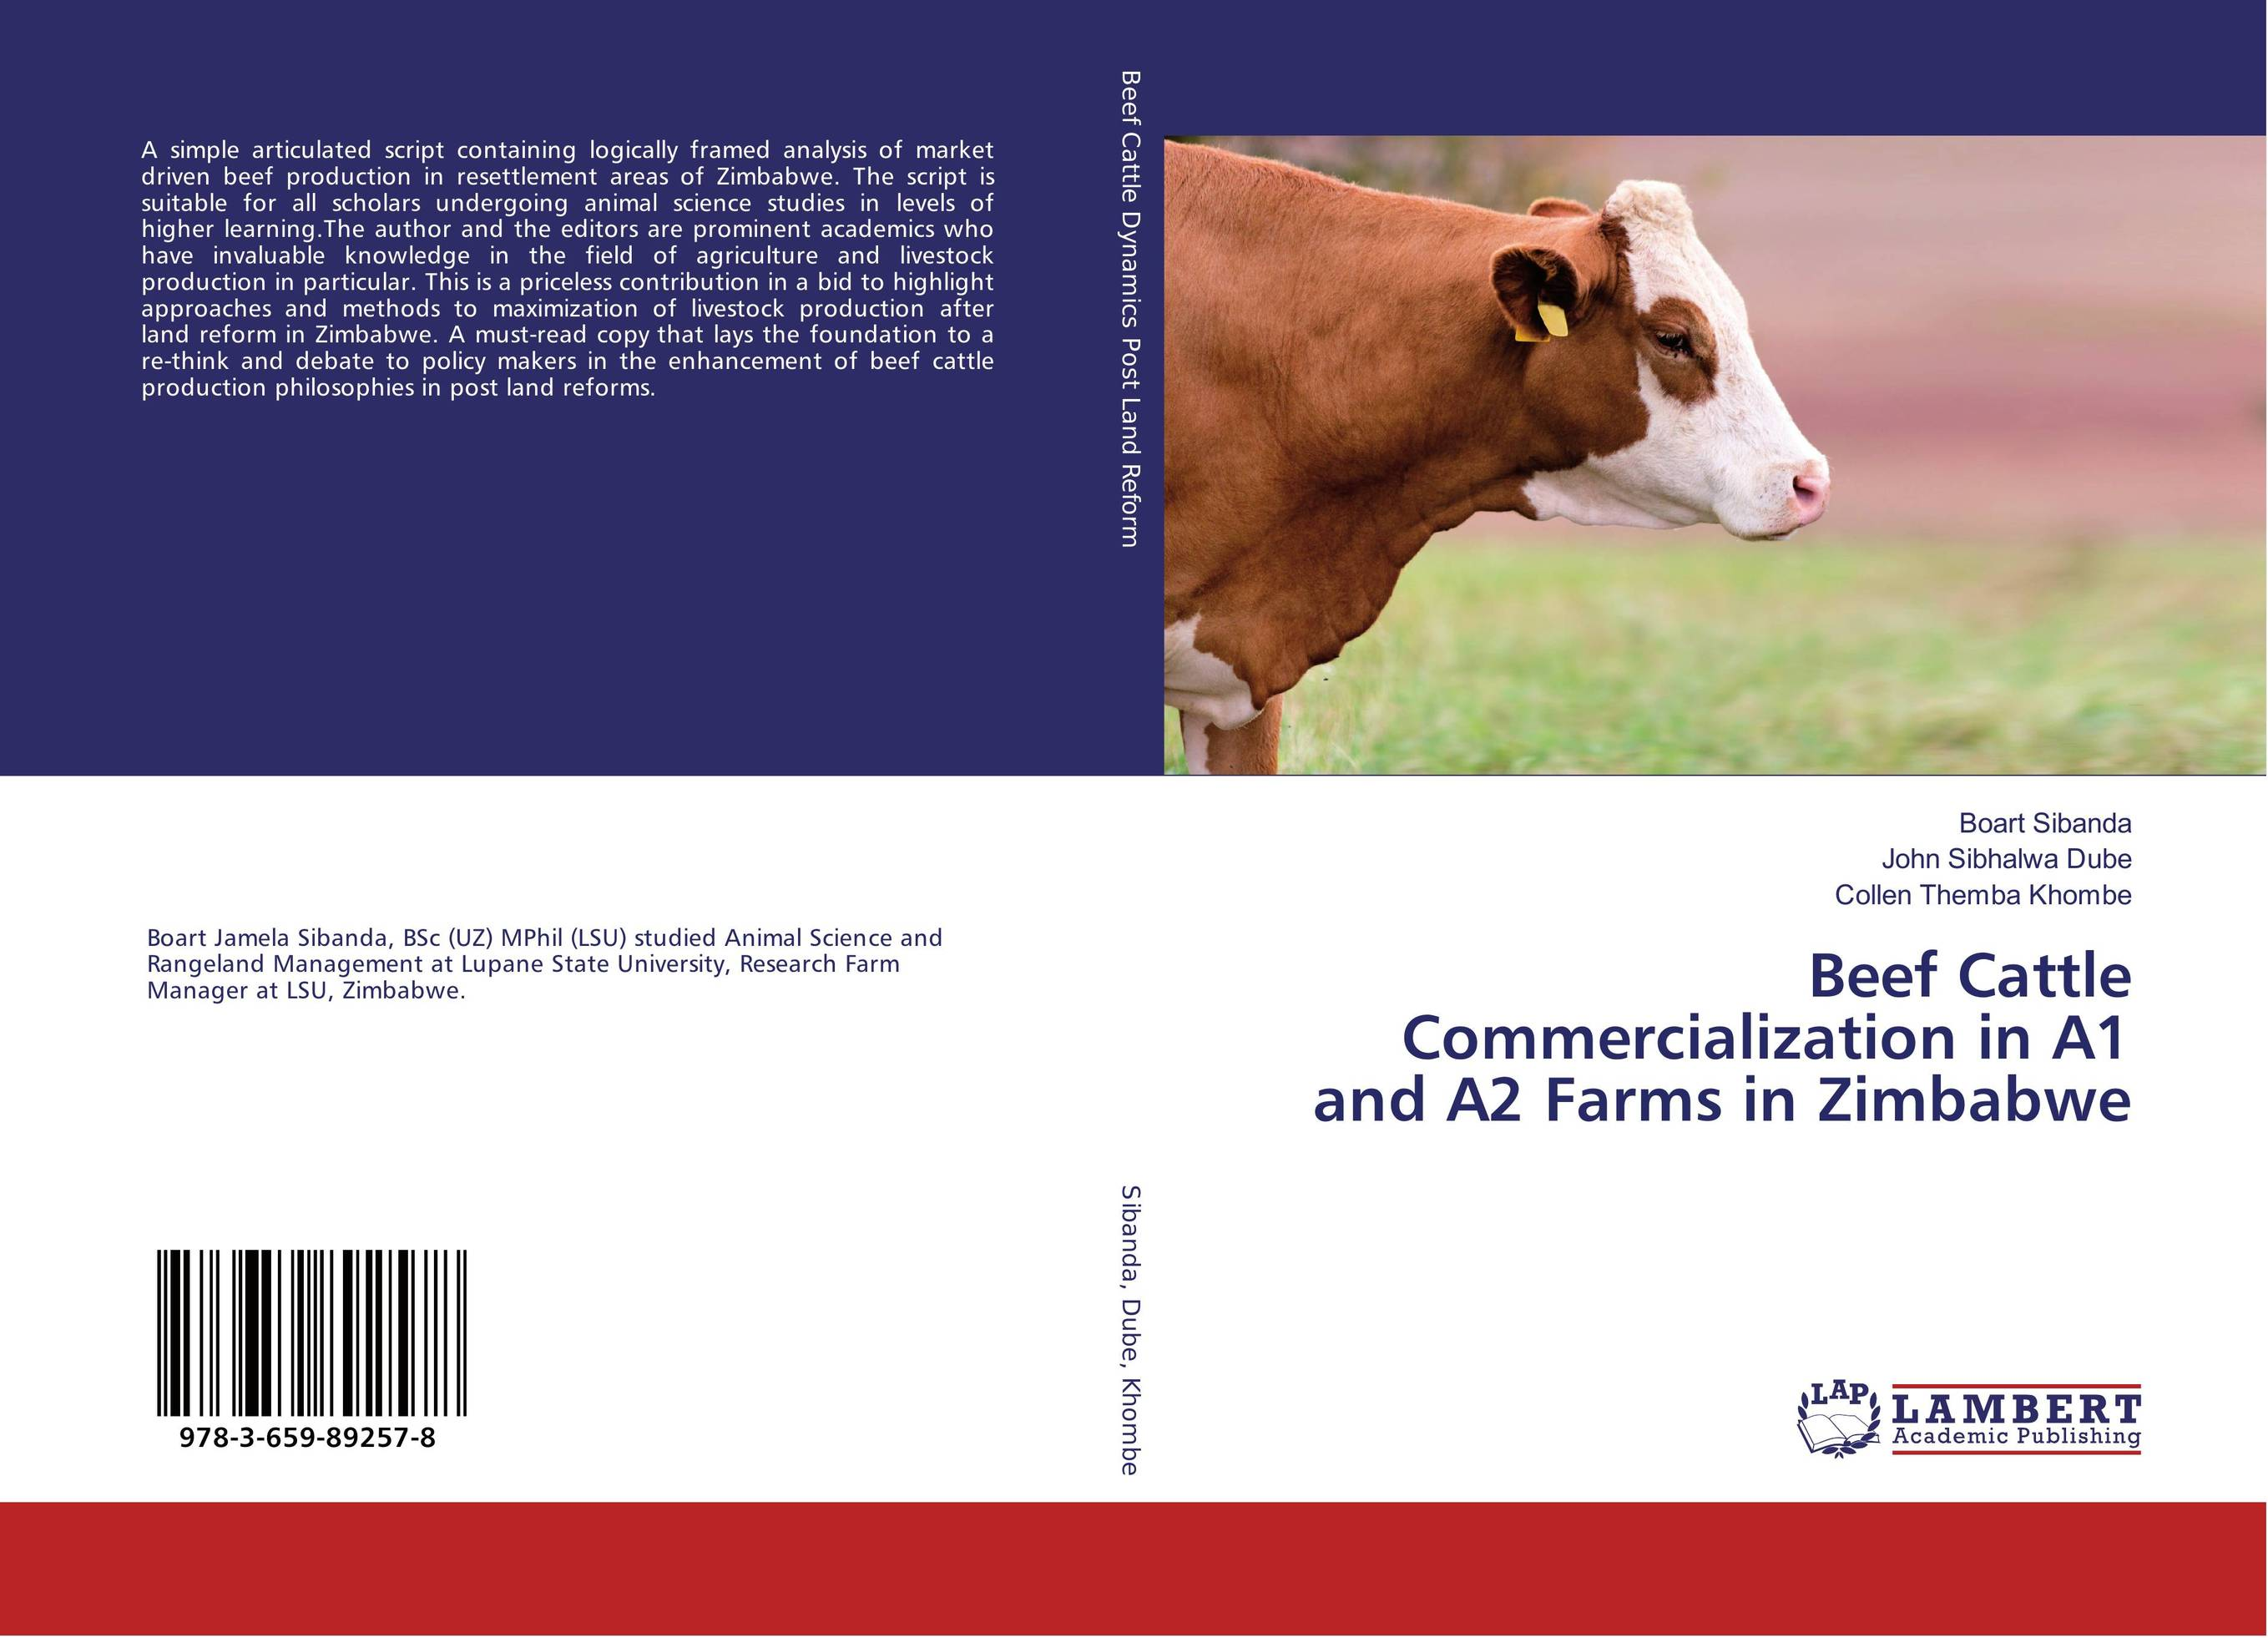 Beef Cattle Commercialization in A1 and A2 Farms in Zimbabwe аксессуары для скрипок other 2015 1 8 1 4 1 2 3 4 4 4 445